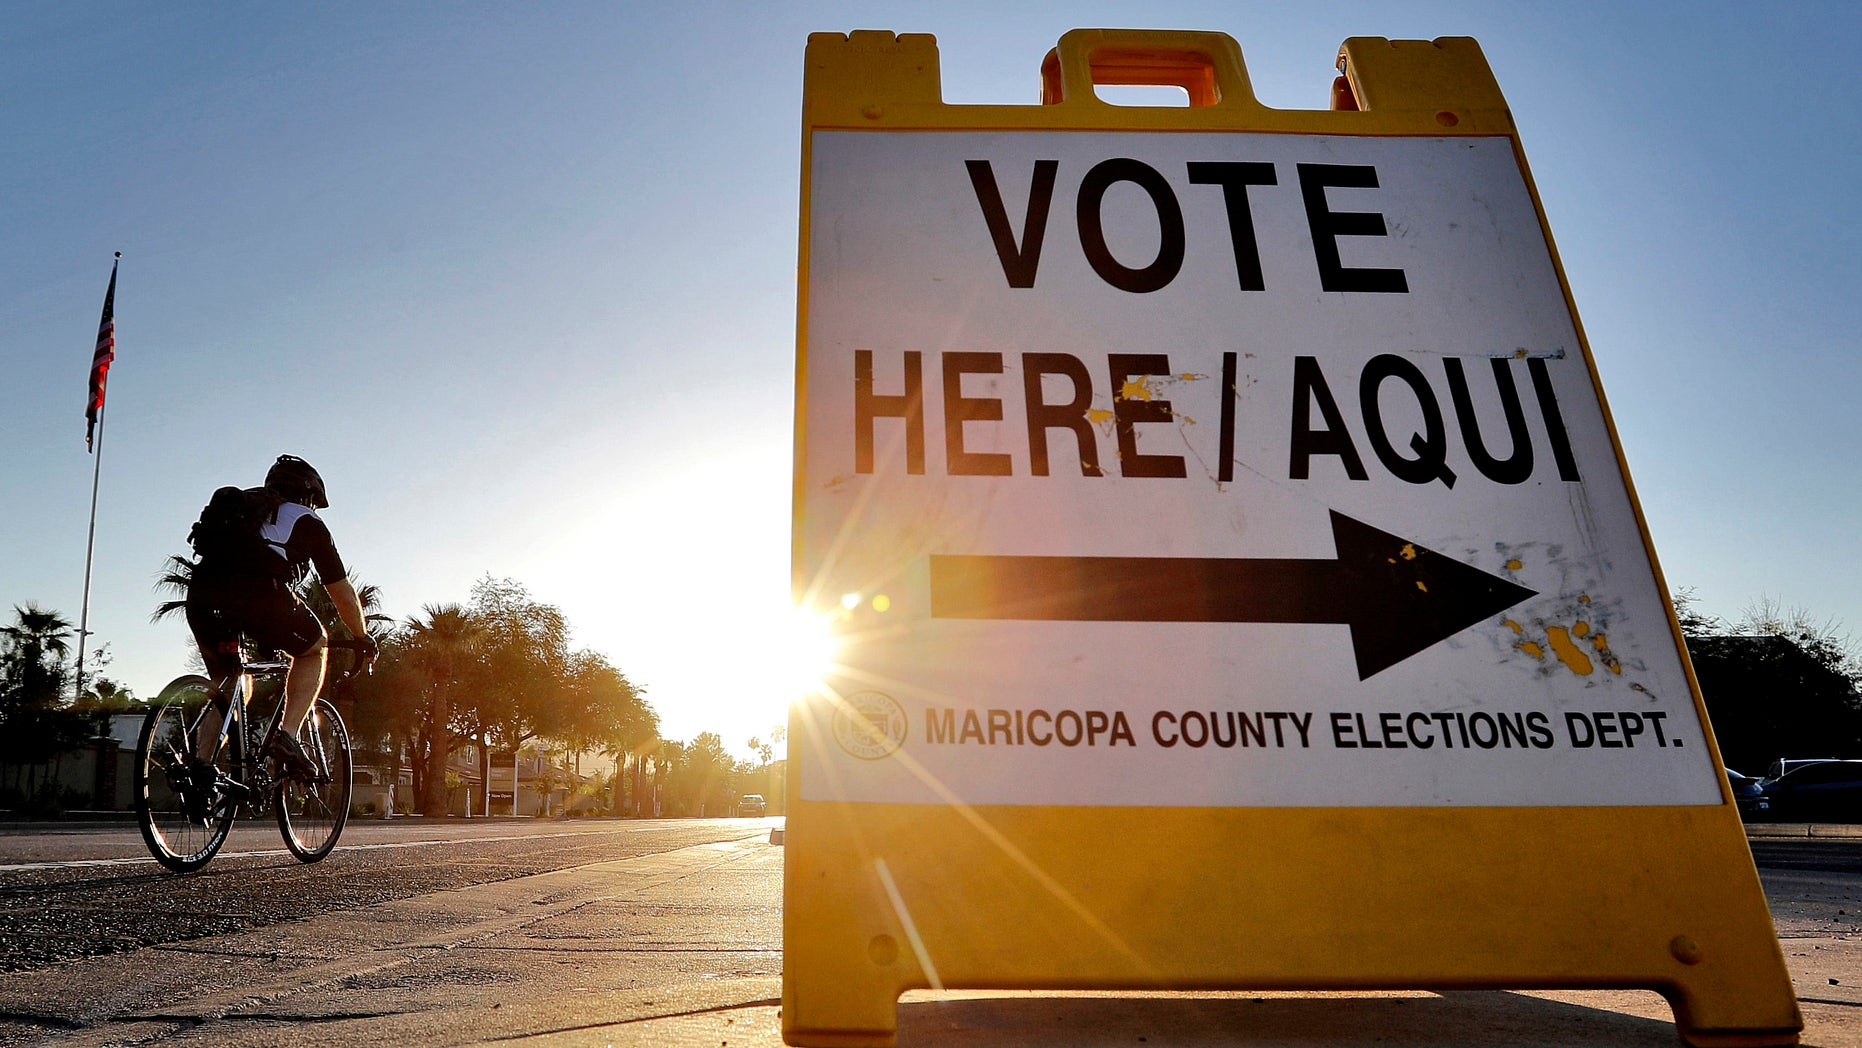 FILE - In this Aug. 30, 2016 file photo, a cyclist rides past a sign directing voters to a primary election voting station early, in Phoenix. Early voting kicks off next week in North Carolina, the first in a two-month run of voting through key swing states where non-whites and young adults could give one of the presidential campaigns a decisive advantage before Election Day.   (AP Photo/Matt York, File)